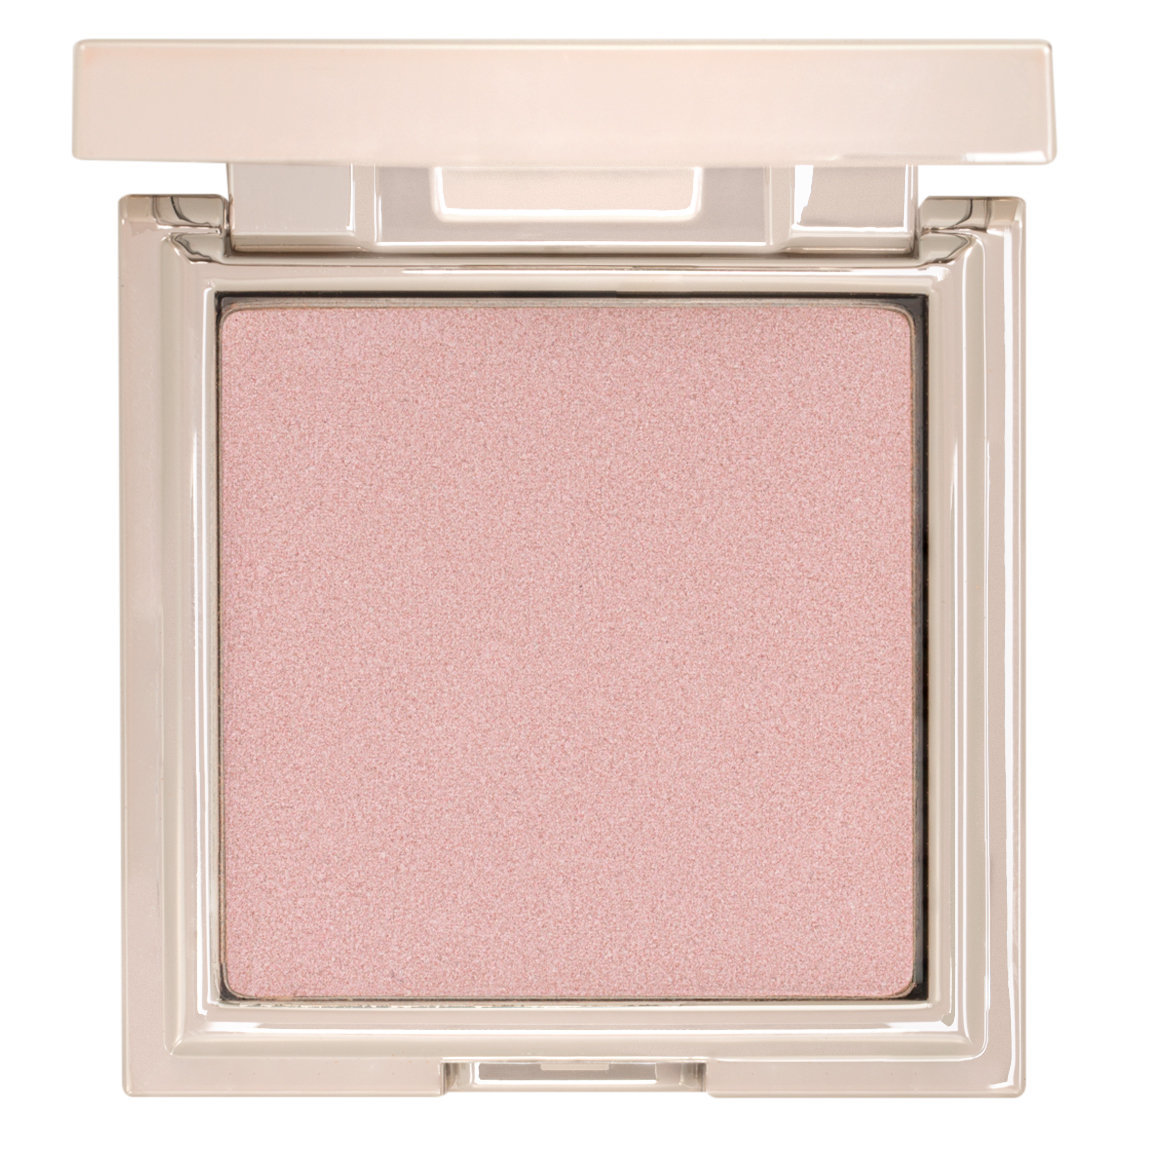 Jouer Cosmetics Powder Highlighter Celestial product smear.